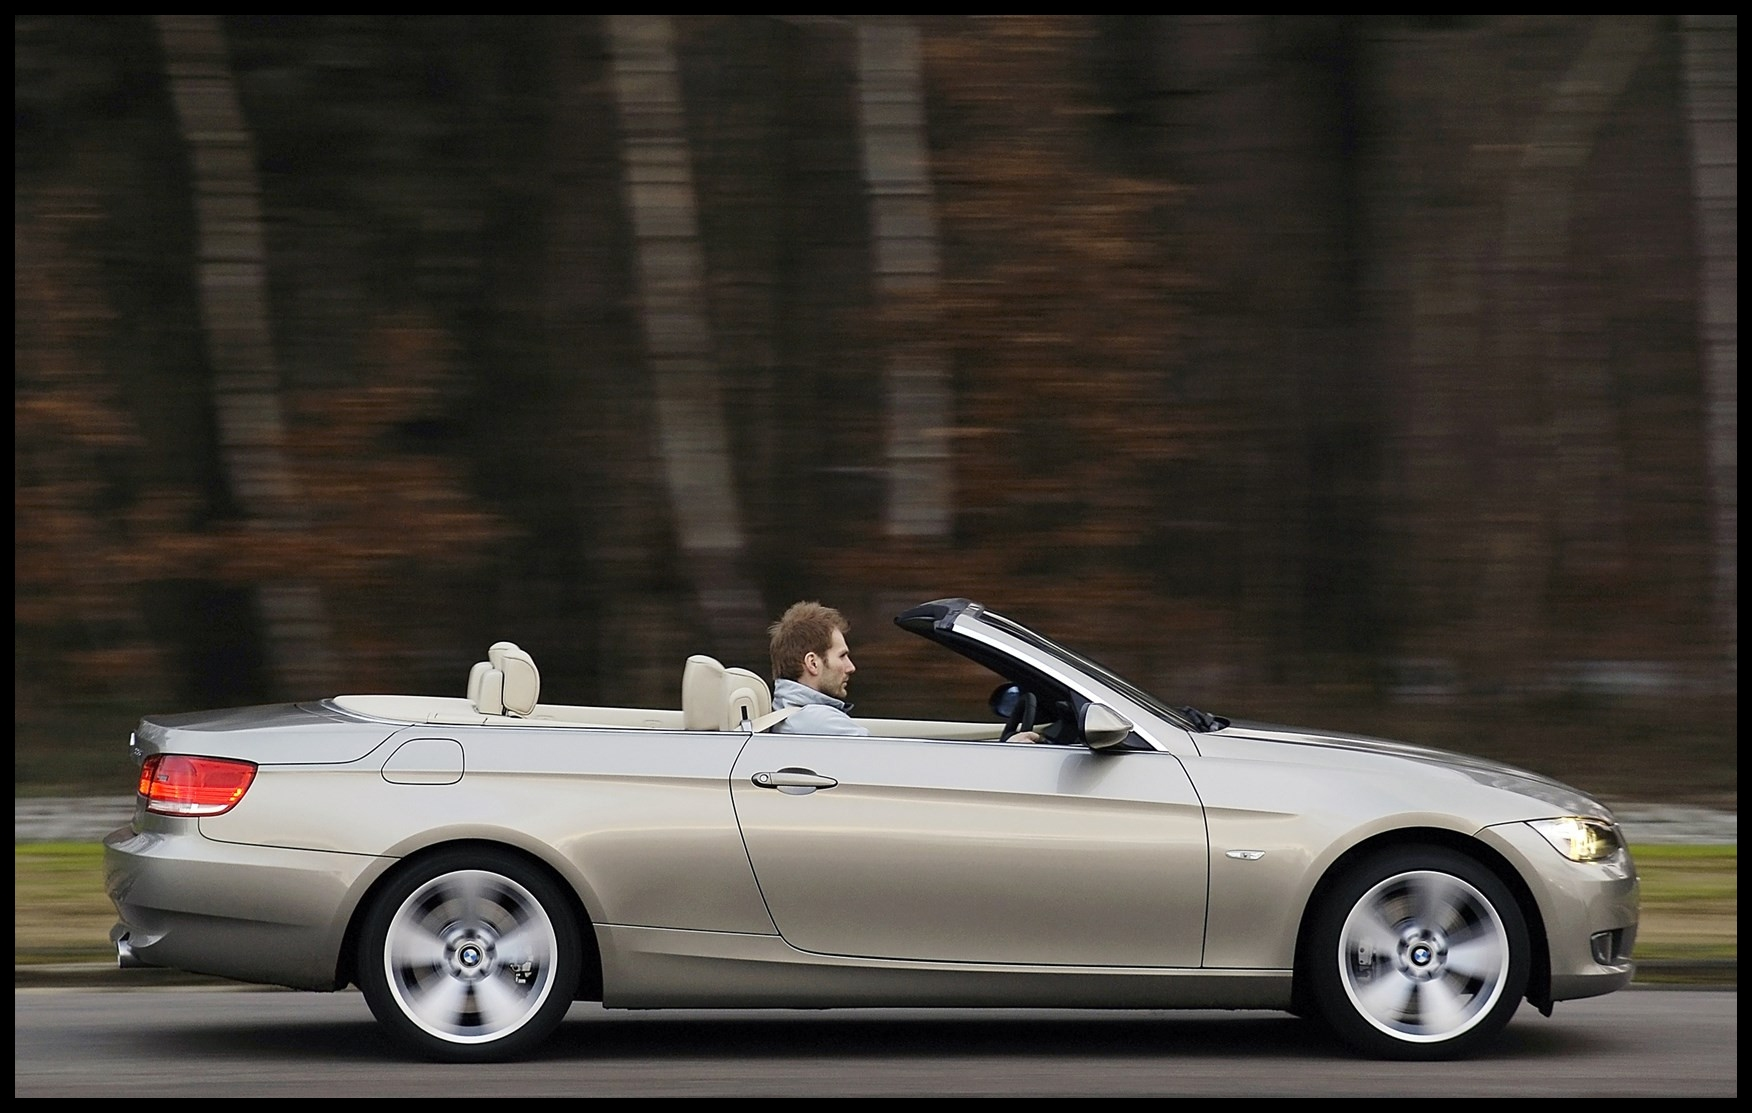 2013 Bmw 335i Review Awesome Bmw 3 Series Convertible Review 2007 2013 2013 Bmw 335i